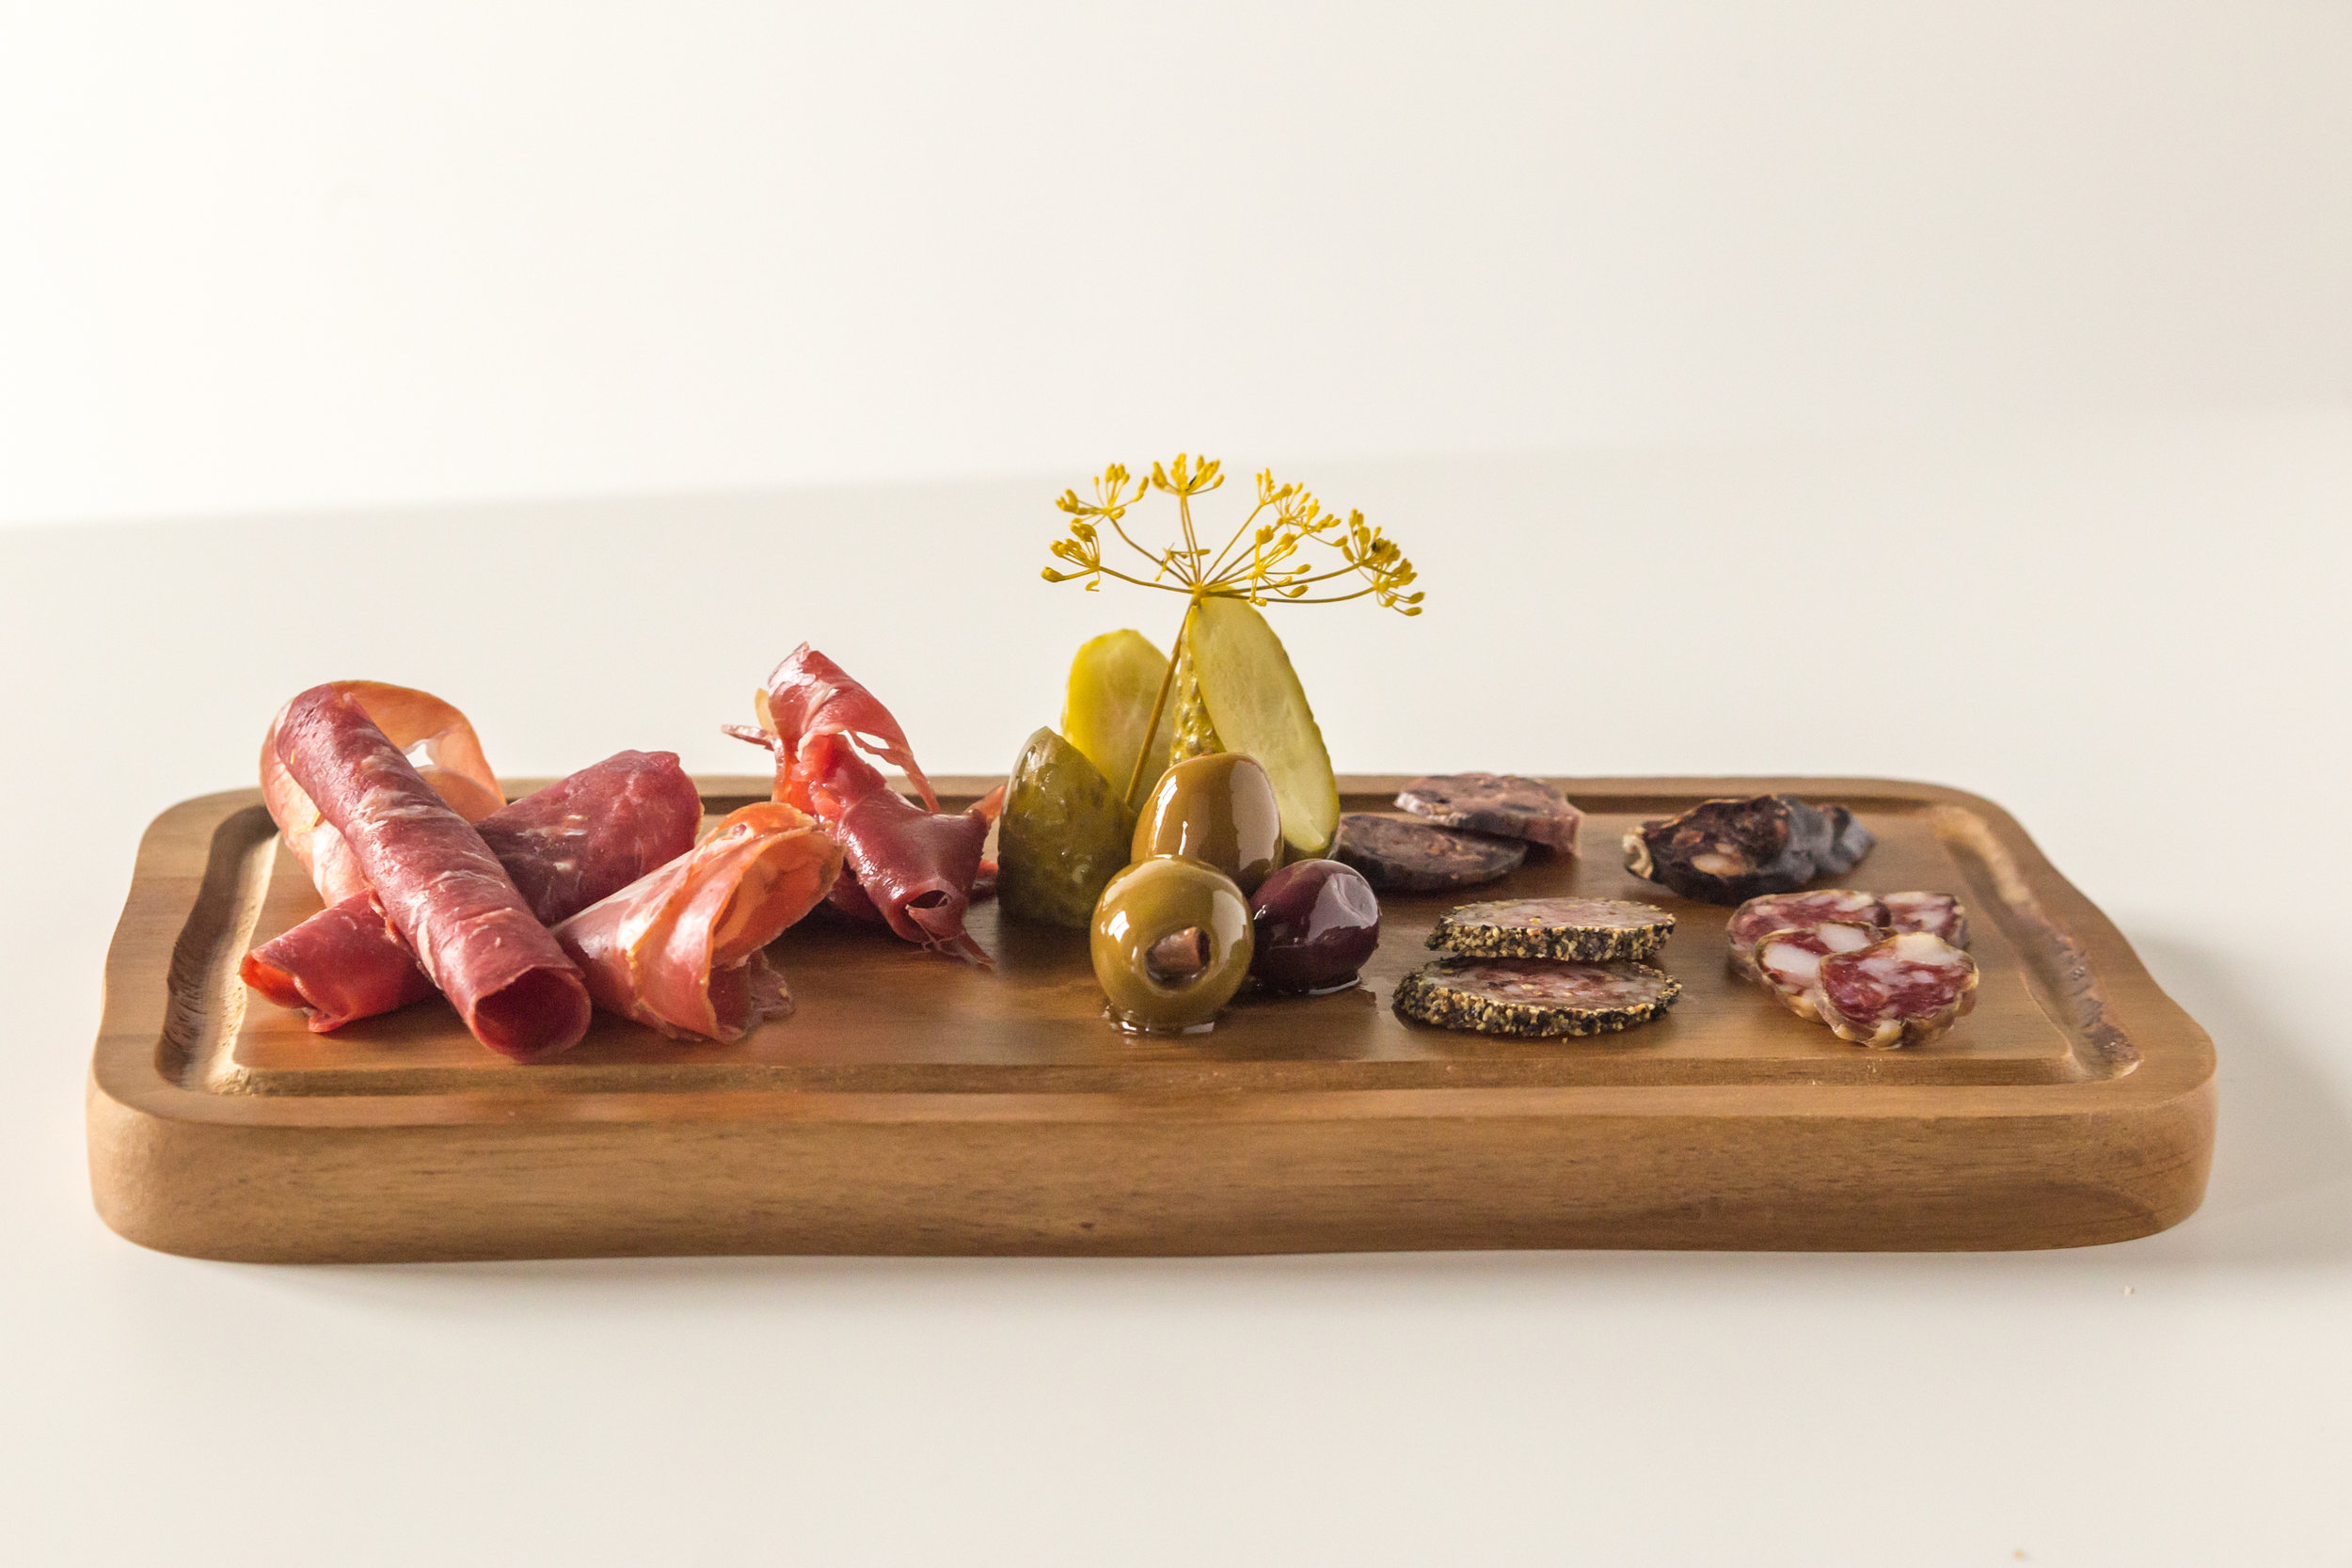 The Cure cured meat platter image